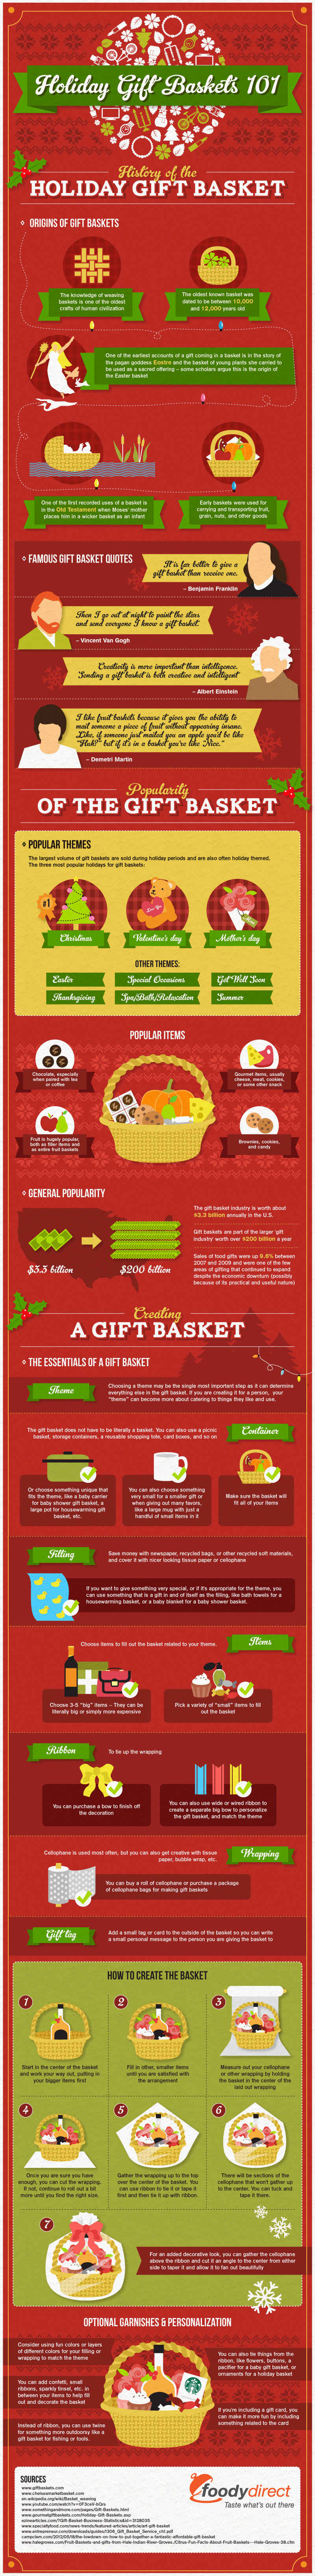 Historical Guide to Gift Baskets